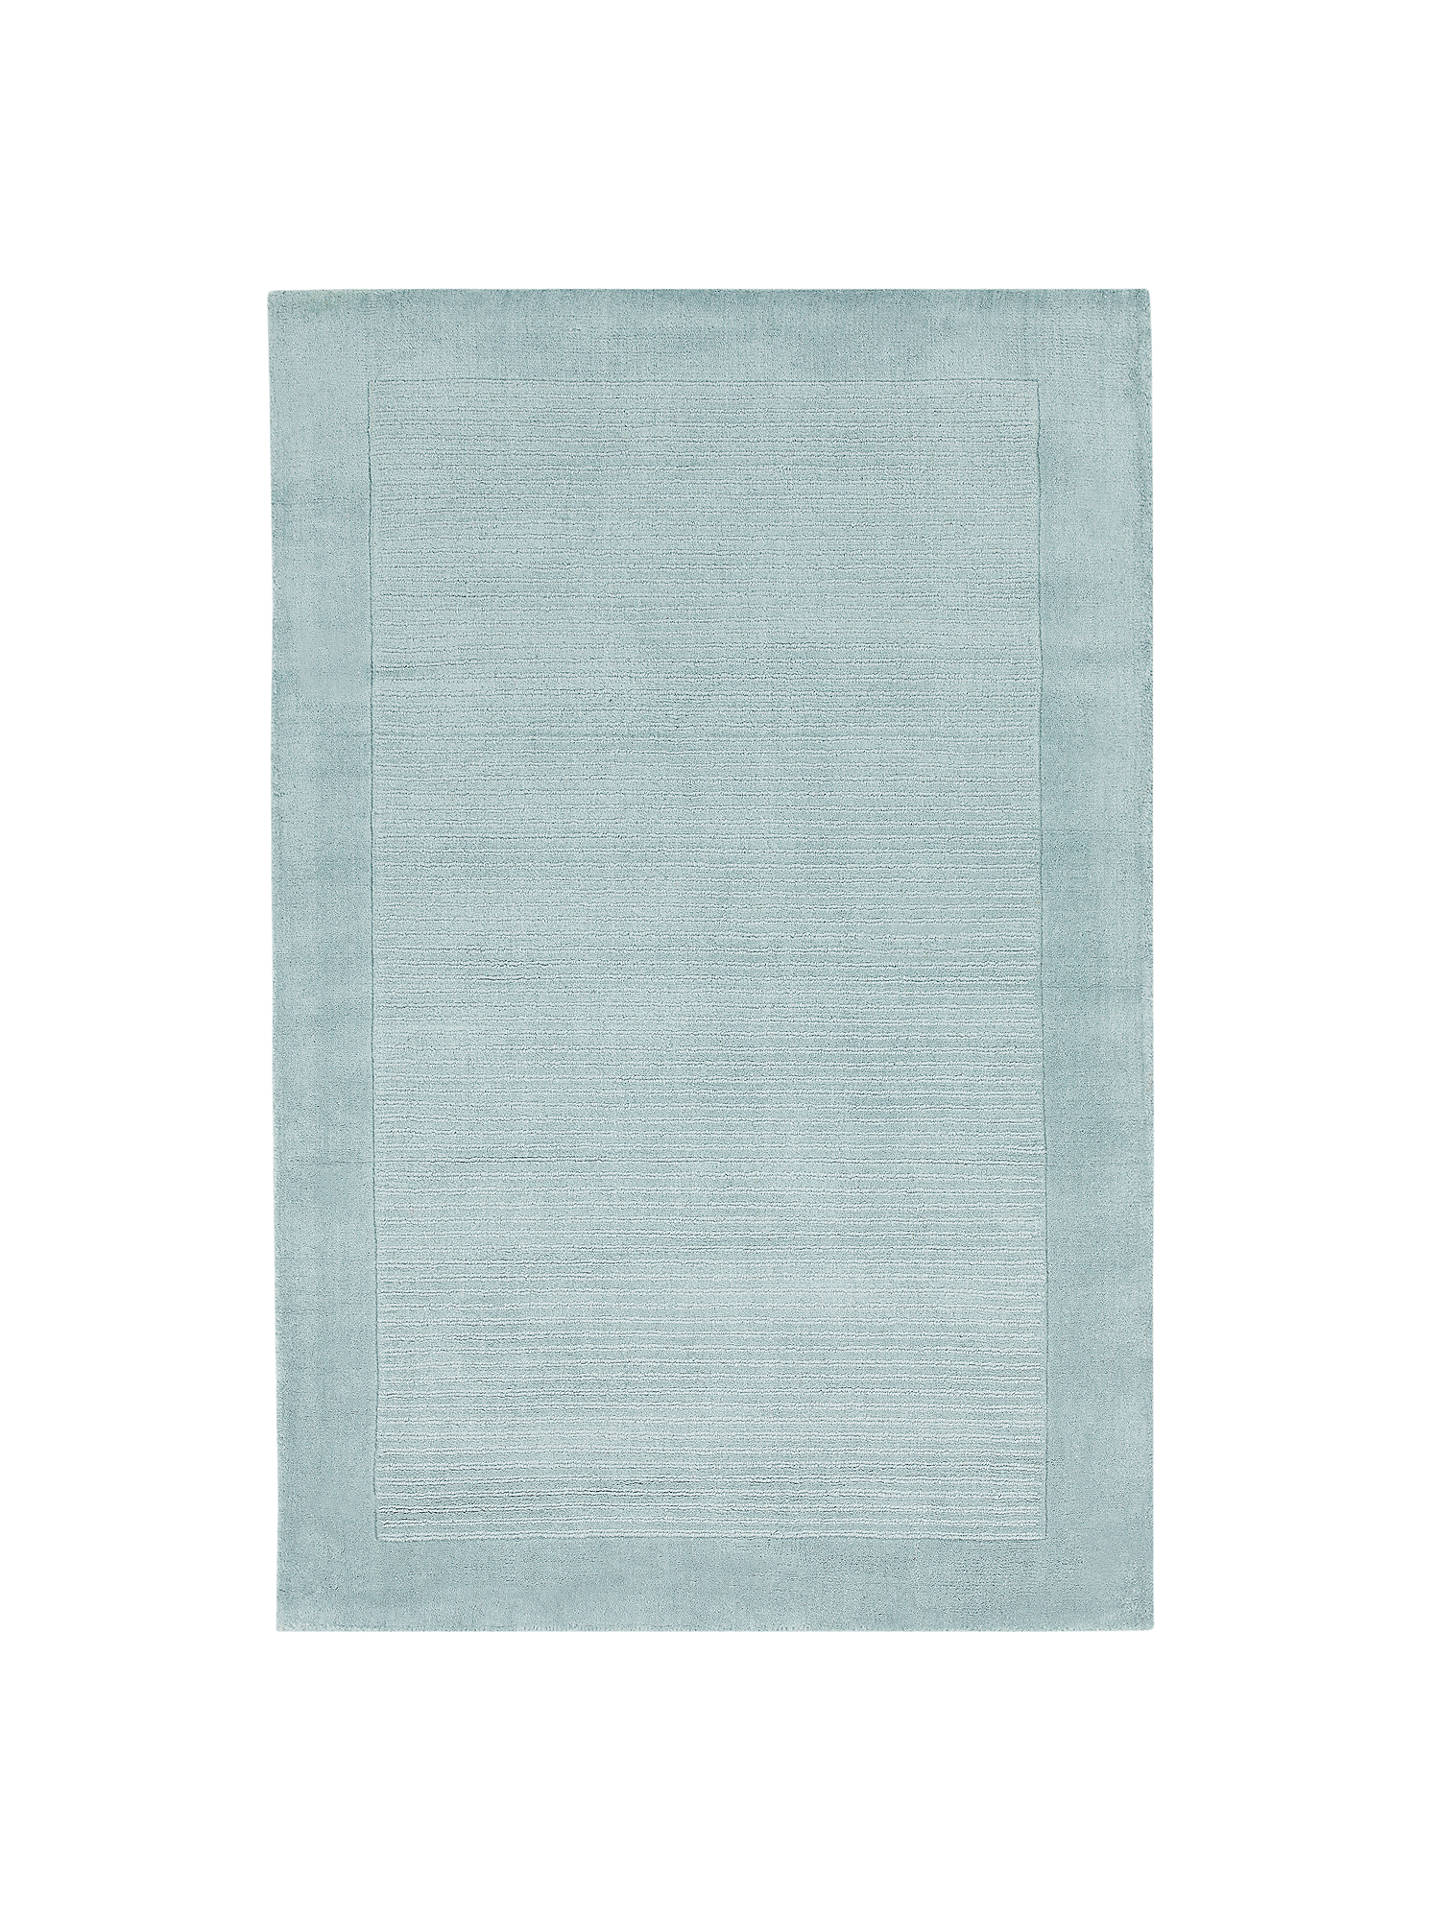 John Lewis Perth Rug Duck Egg L300 X W200cm Online At Johnlewis Com